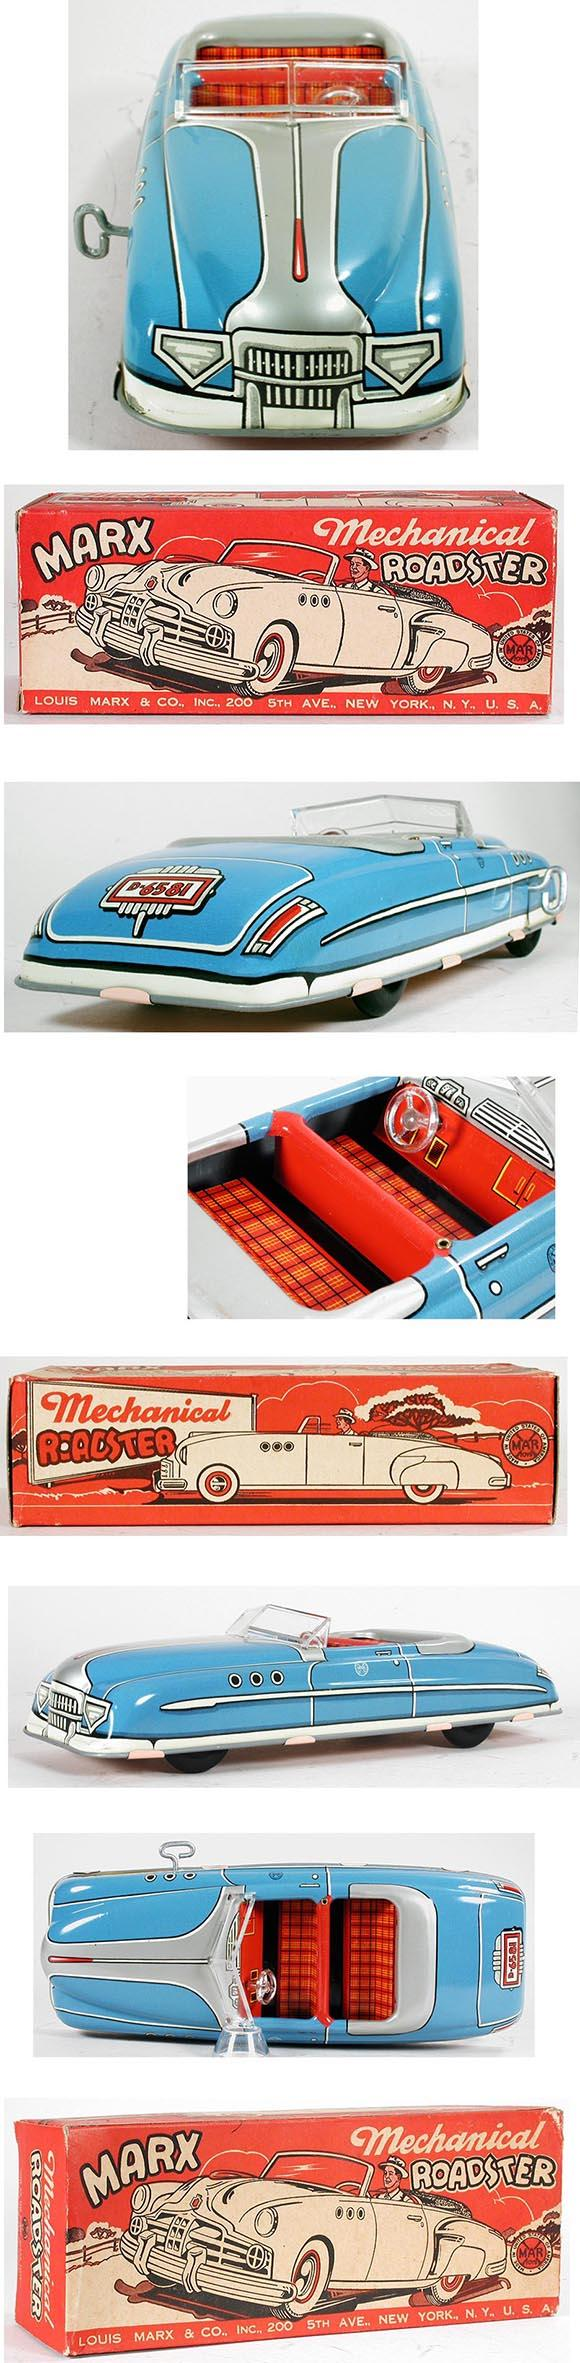 1949 Marx, Mechanical Roadster (Turquoise Blue) in Original Box